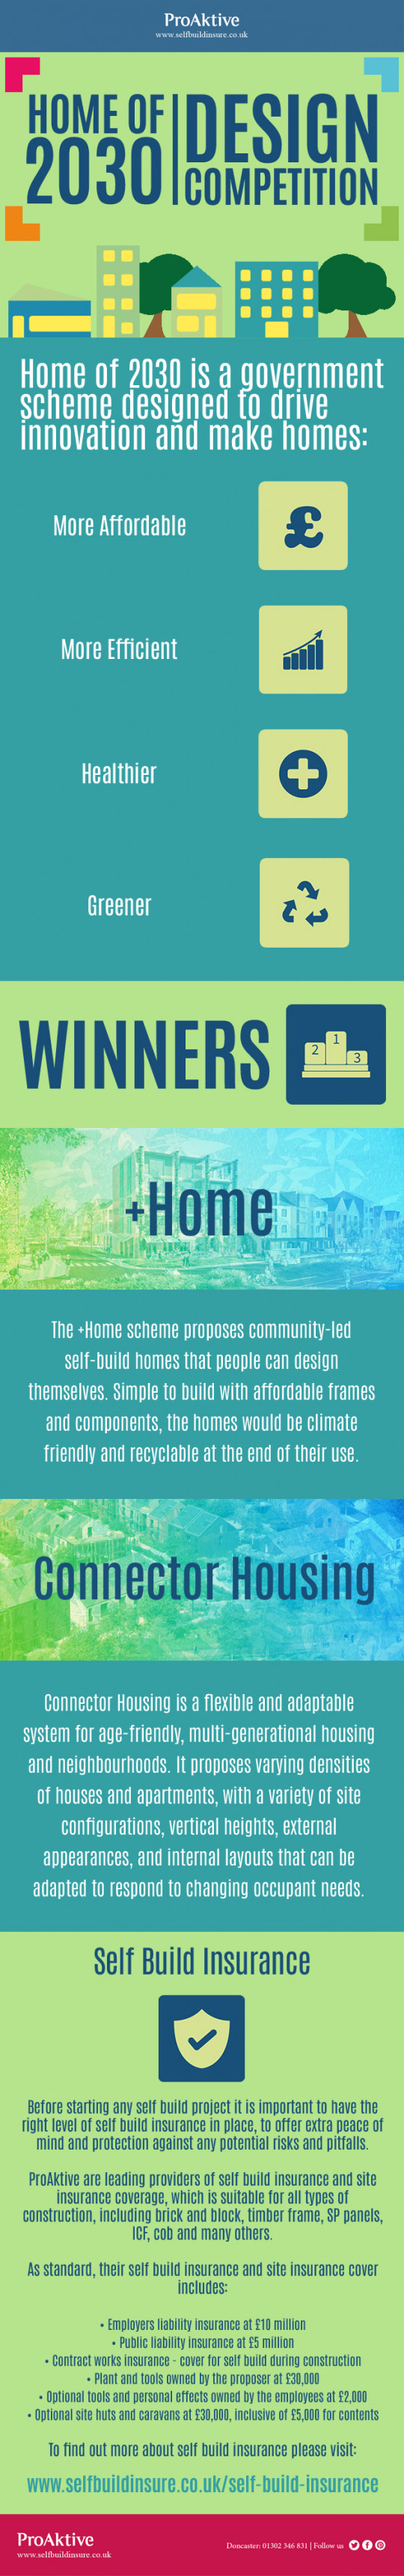 'Home of 2030' Design Competition